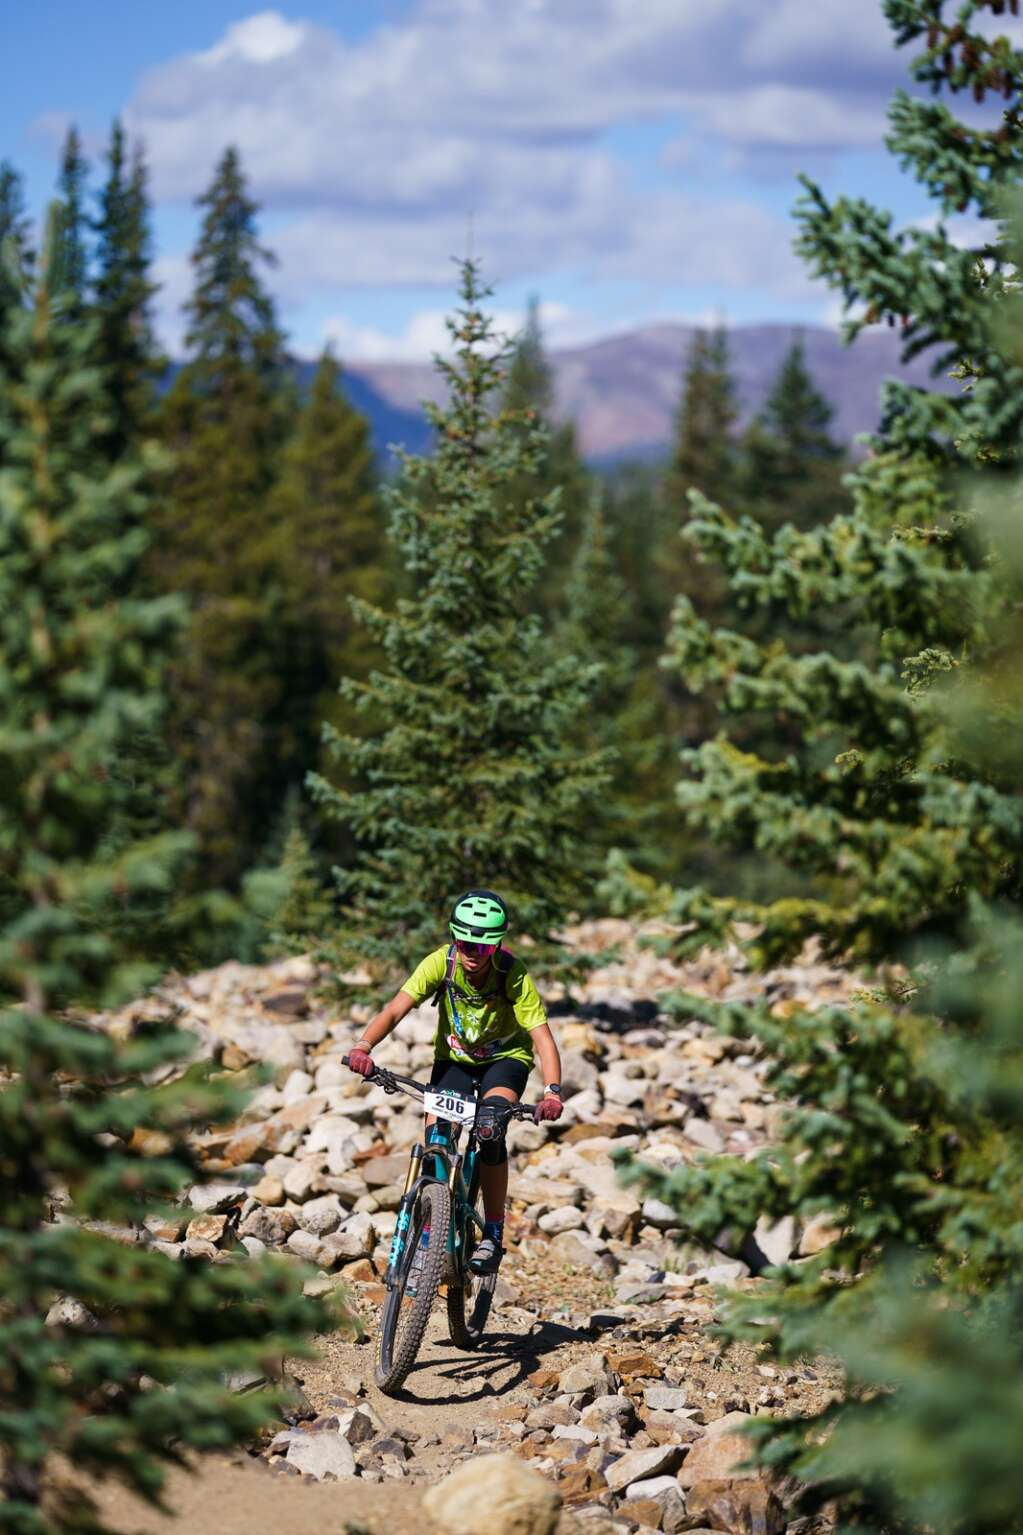 Lili Zygulski of Breckenridge rides up Turk's trail on the 9.3-mile small course on her way to taking first place in the junior girls 13-15 category at Sunday's Fall Classic mountain bike race in Breckenridge. | Photo by John Hanson/For the Summit Daily News